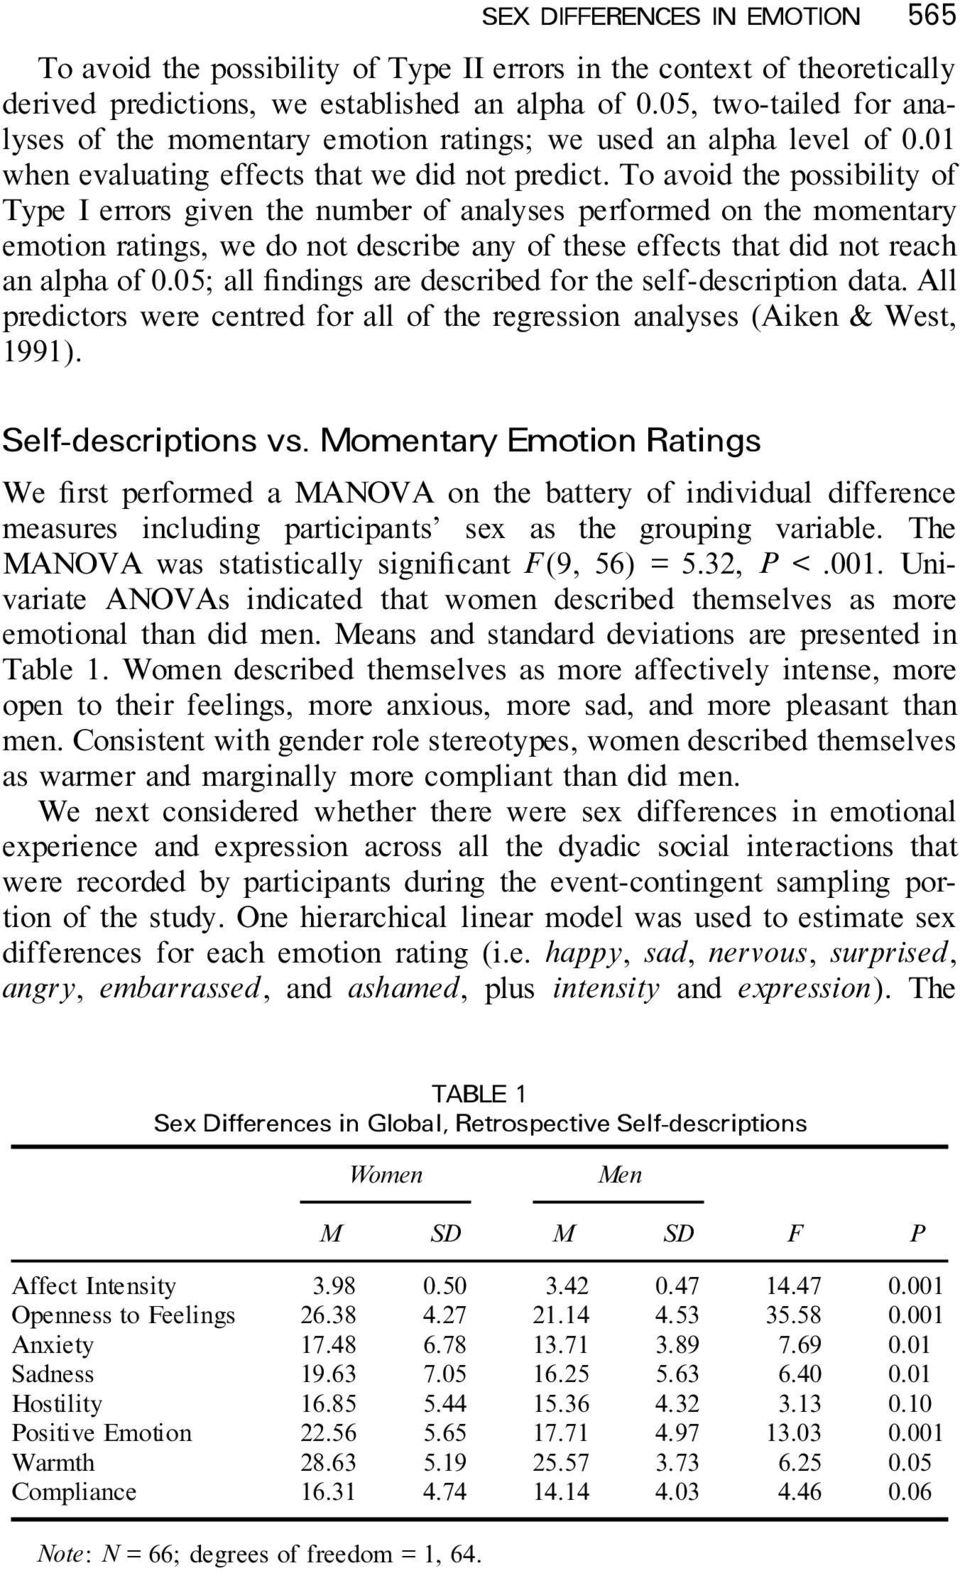 To avoid the possibility of Type I errors given the number of analyses performed on the momentary emotion ratings, we do not describe any of these effects that did not reach an alpha of 0.